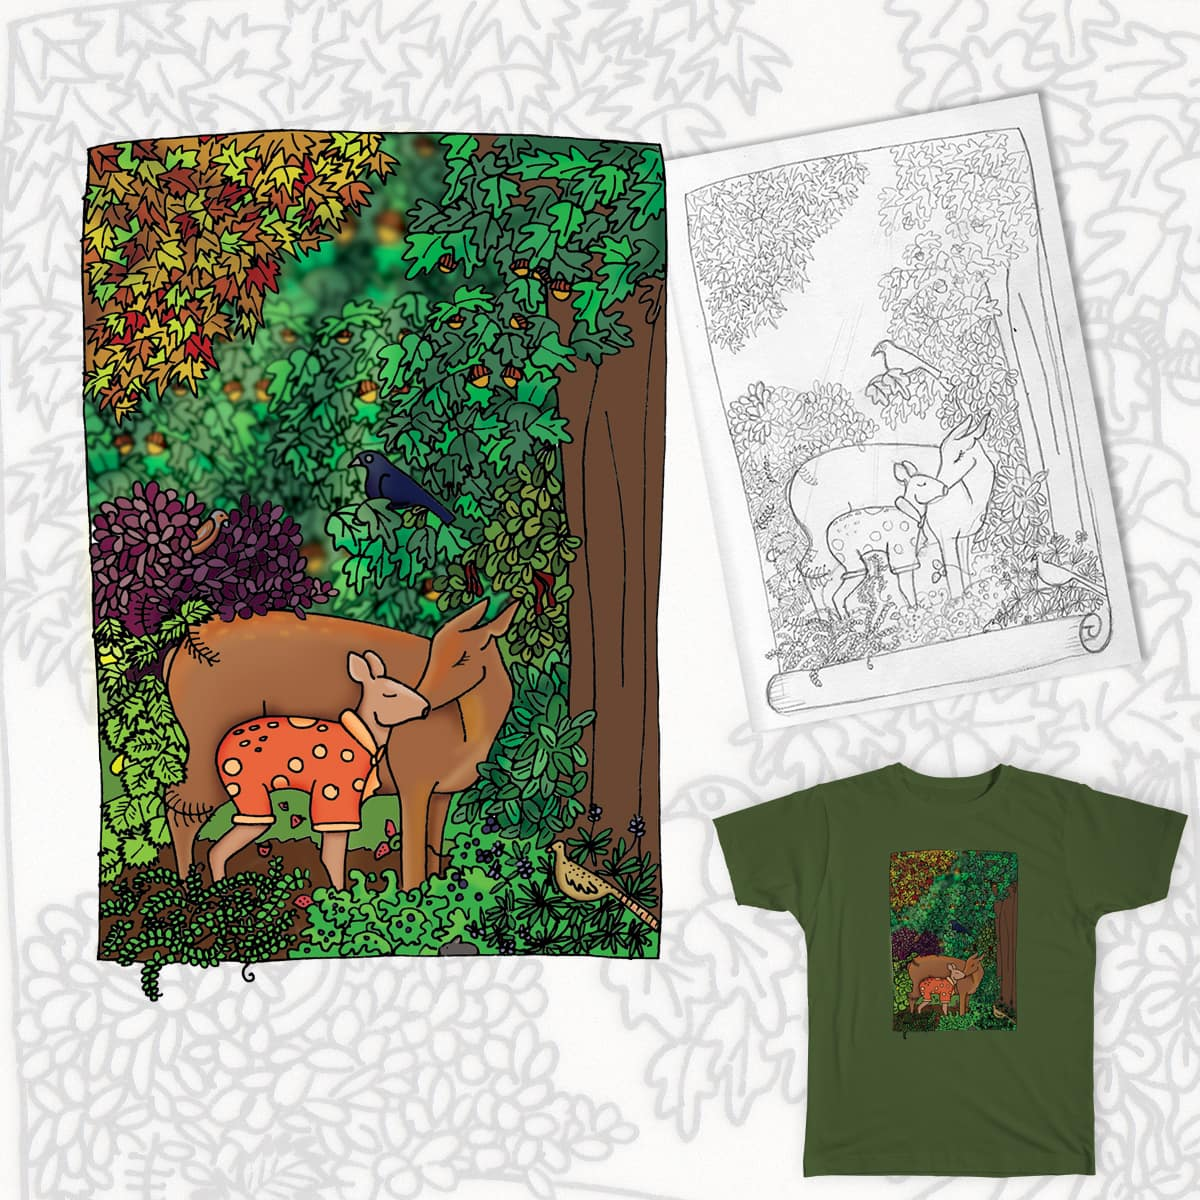 Into the forest by AnDickinson on Threadless